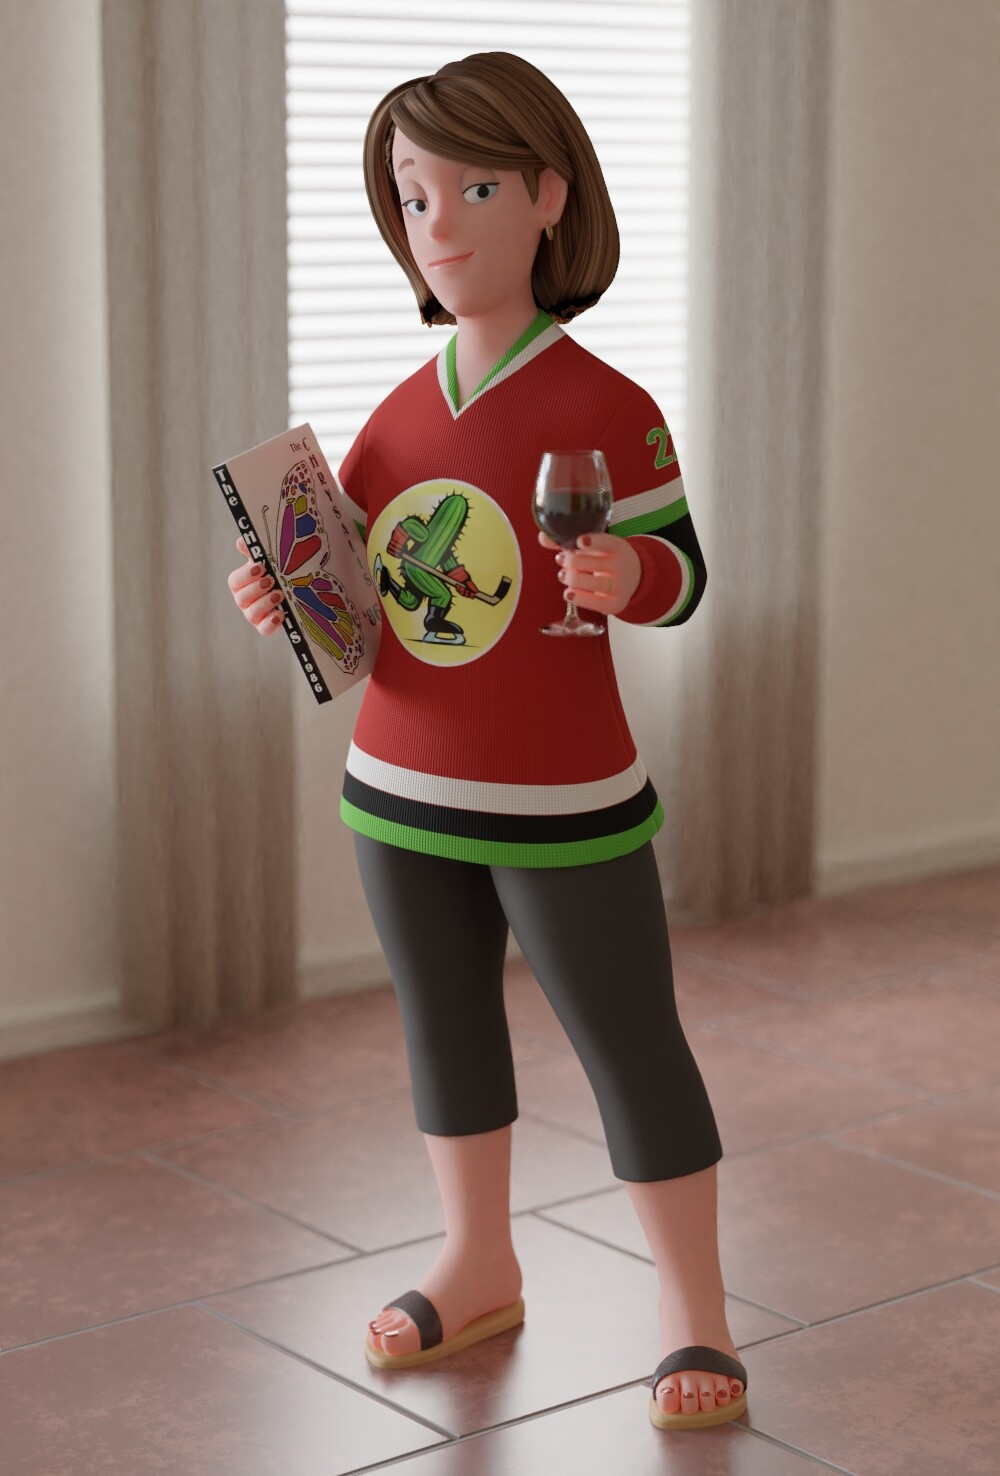 Angie, a 3D version of a character from my webcomic, MAN BAND.